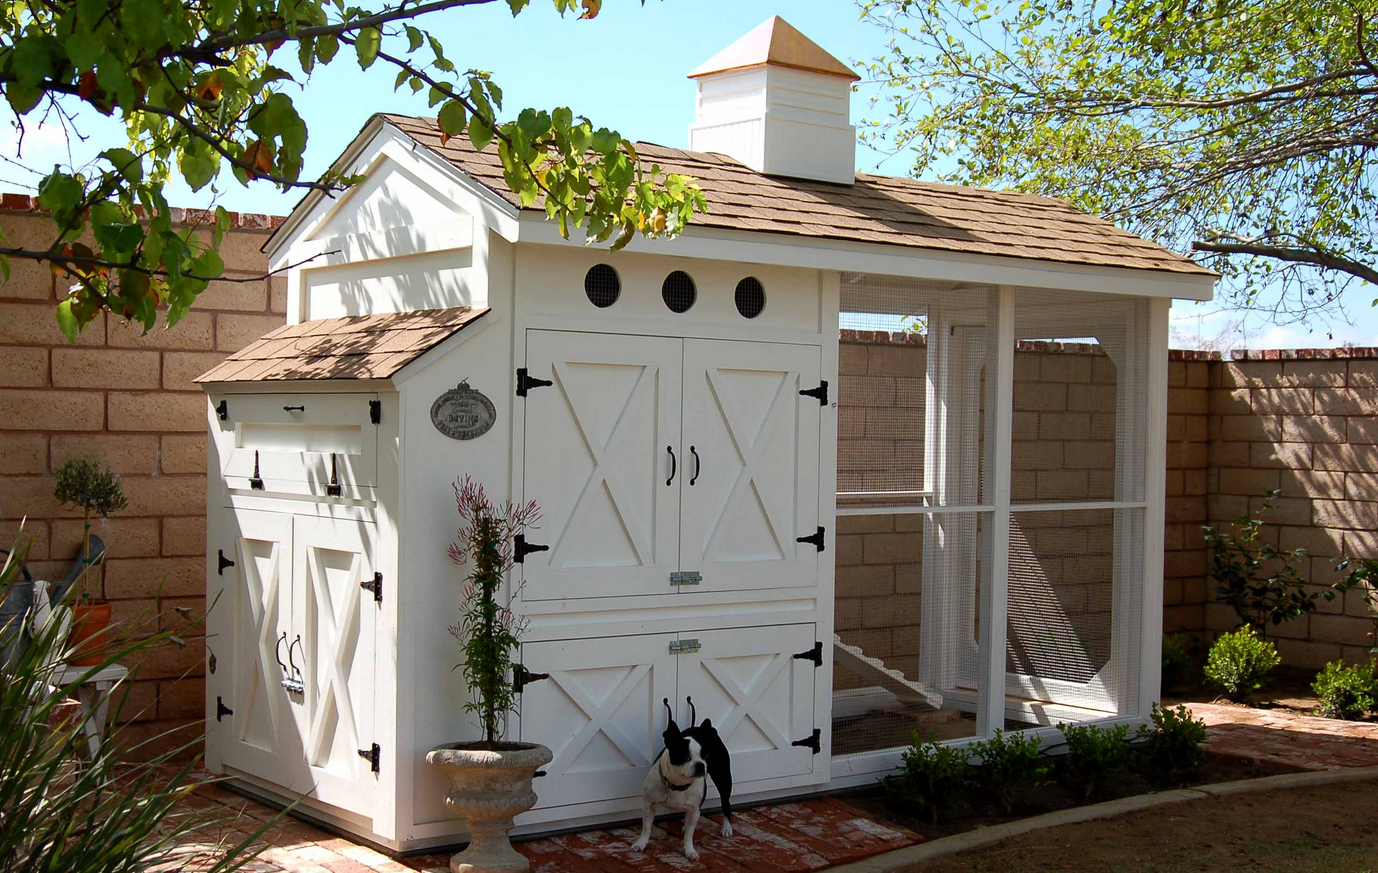 5 simple steps on how to build a backyard chicken coop freecycle usa